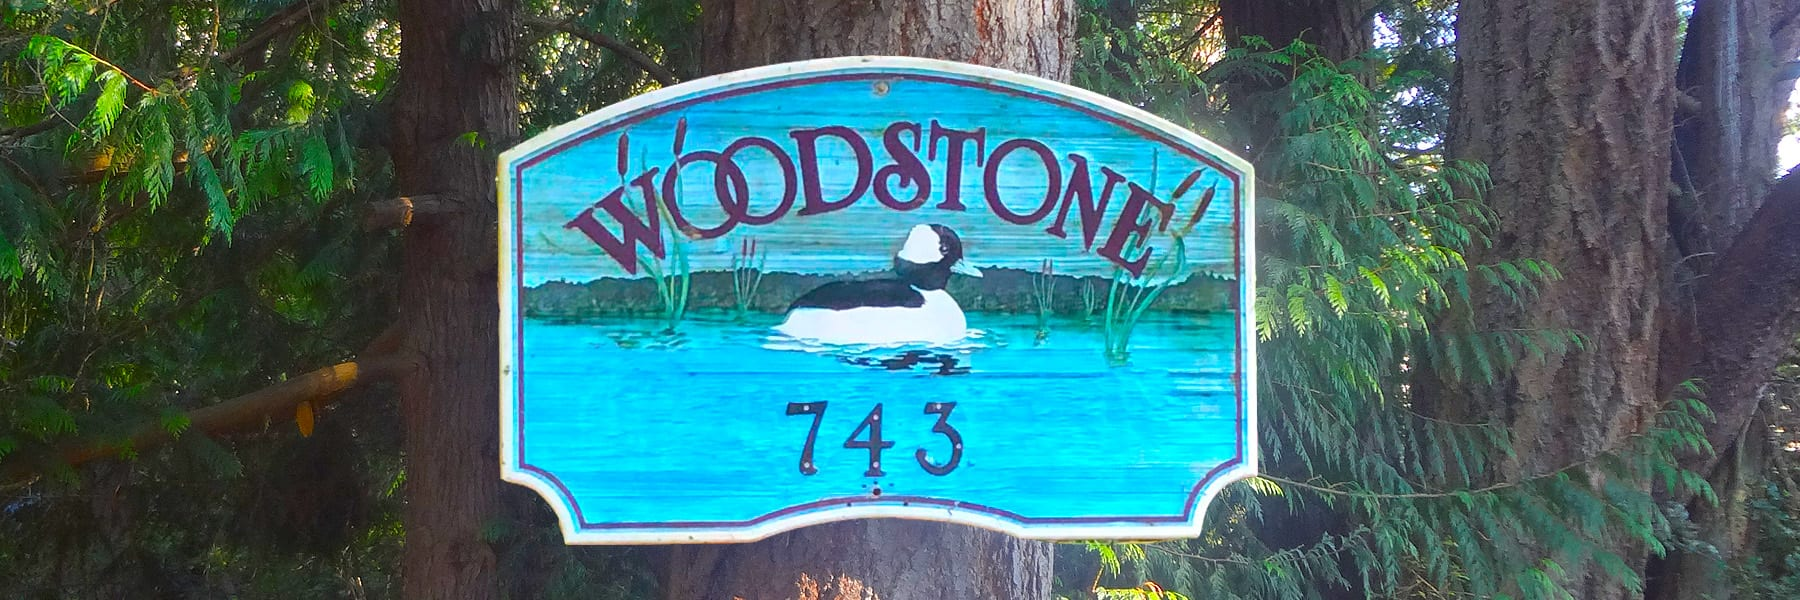 Woodstone Manor on Galiano Island is a magical place to enjoy a romantic getaway or family vacation